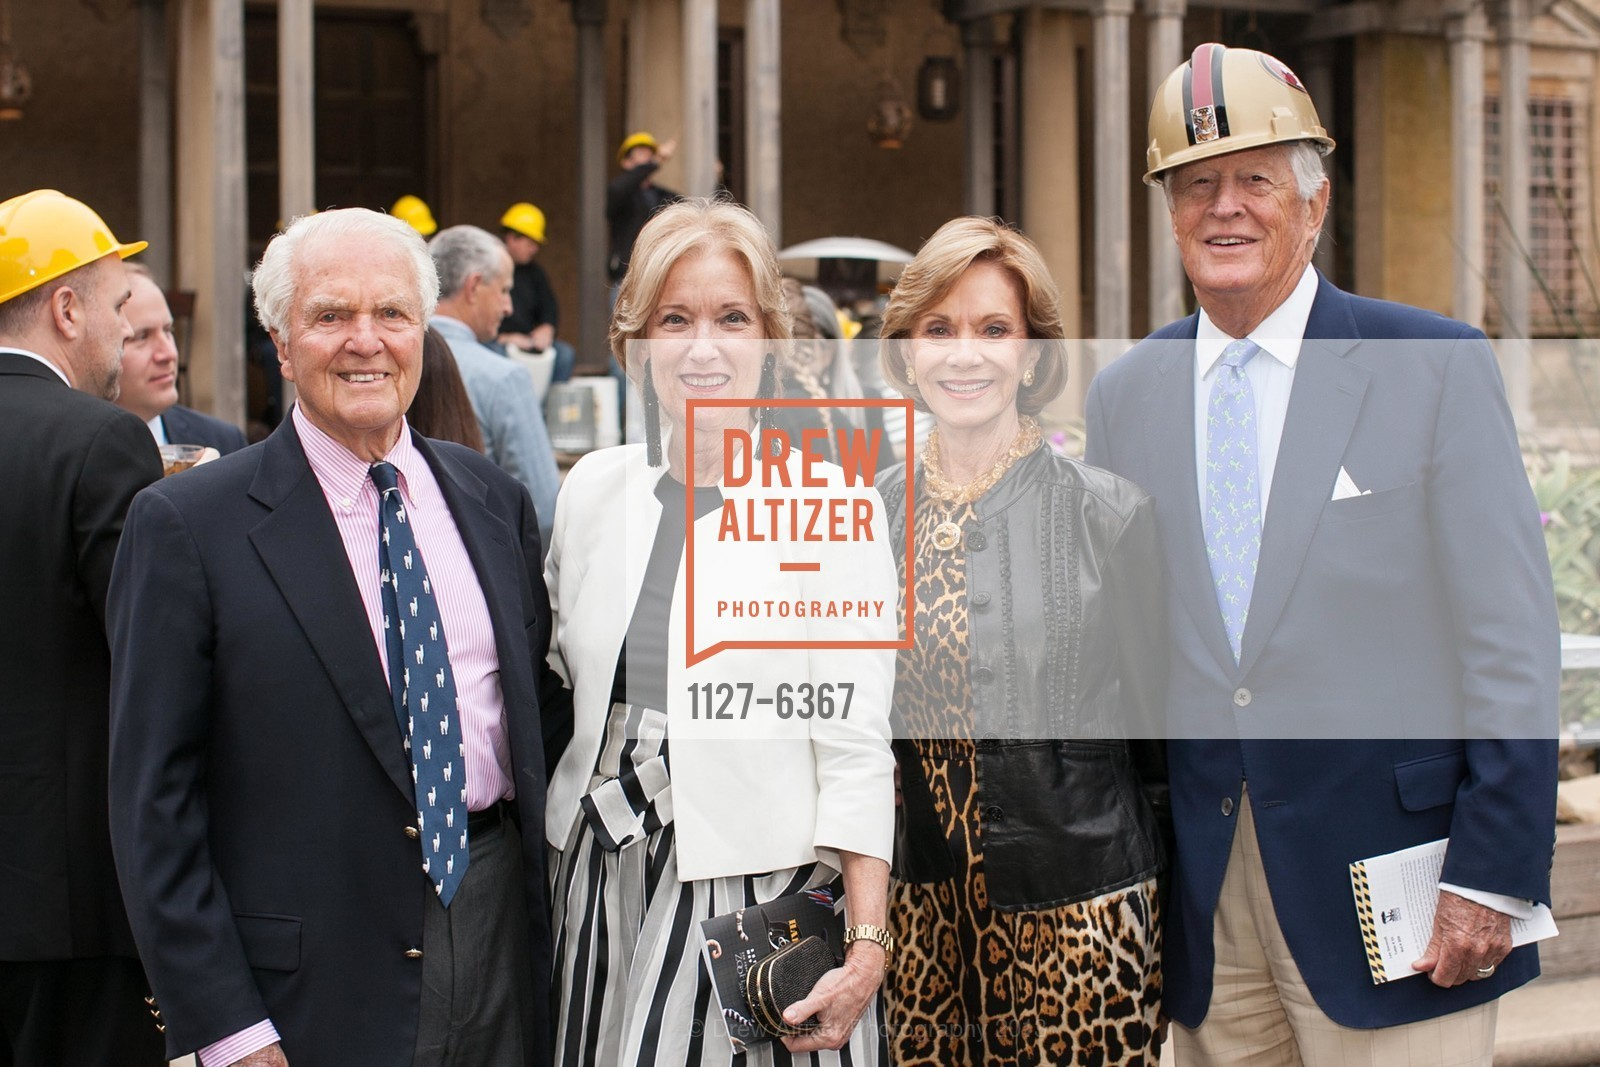 JIm Ludwig, Patsy Ludwig, Jane Gammill, Lee Gammill, ZooFest 2013 Hard Hat & Tails, US, May 11th, 2013,Drew Altizer, Drew Altizer Photography, full-service agency, private events, San Francisco photographer, photographer california